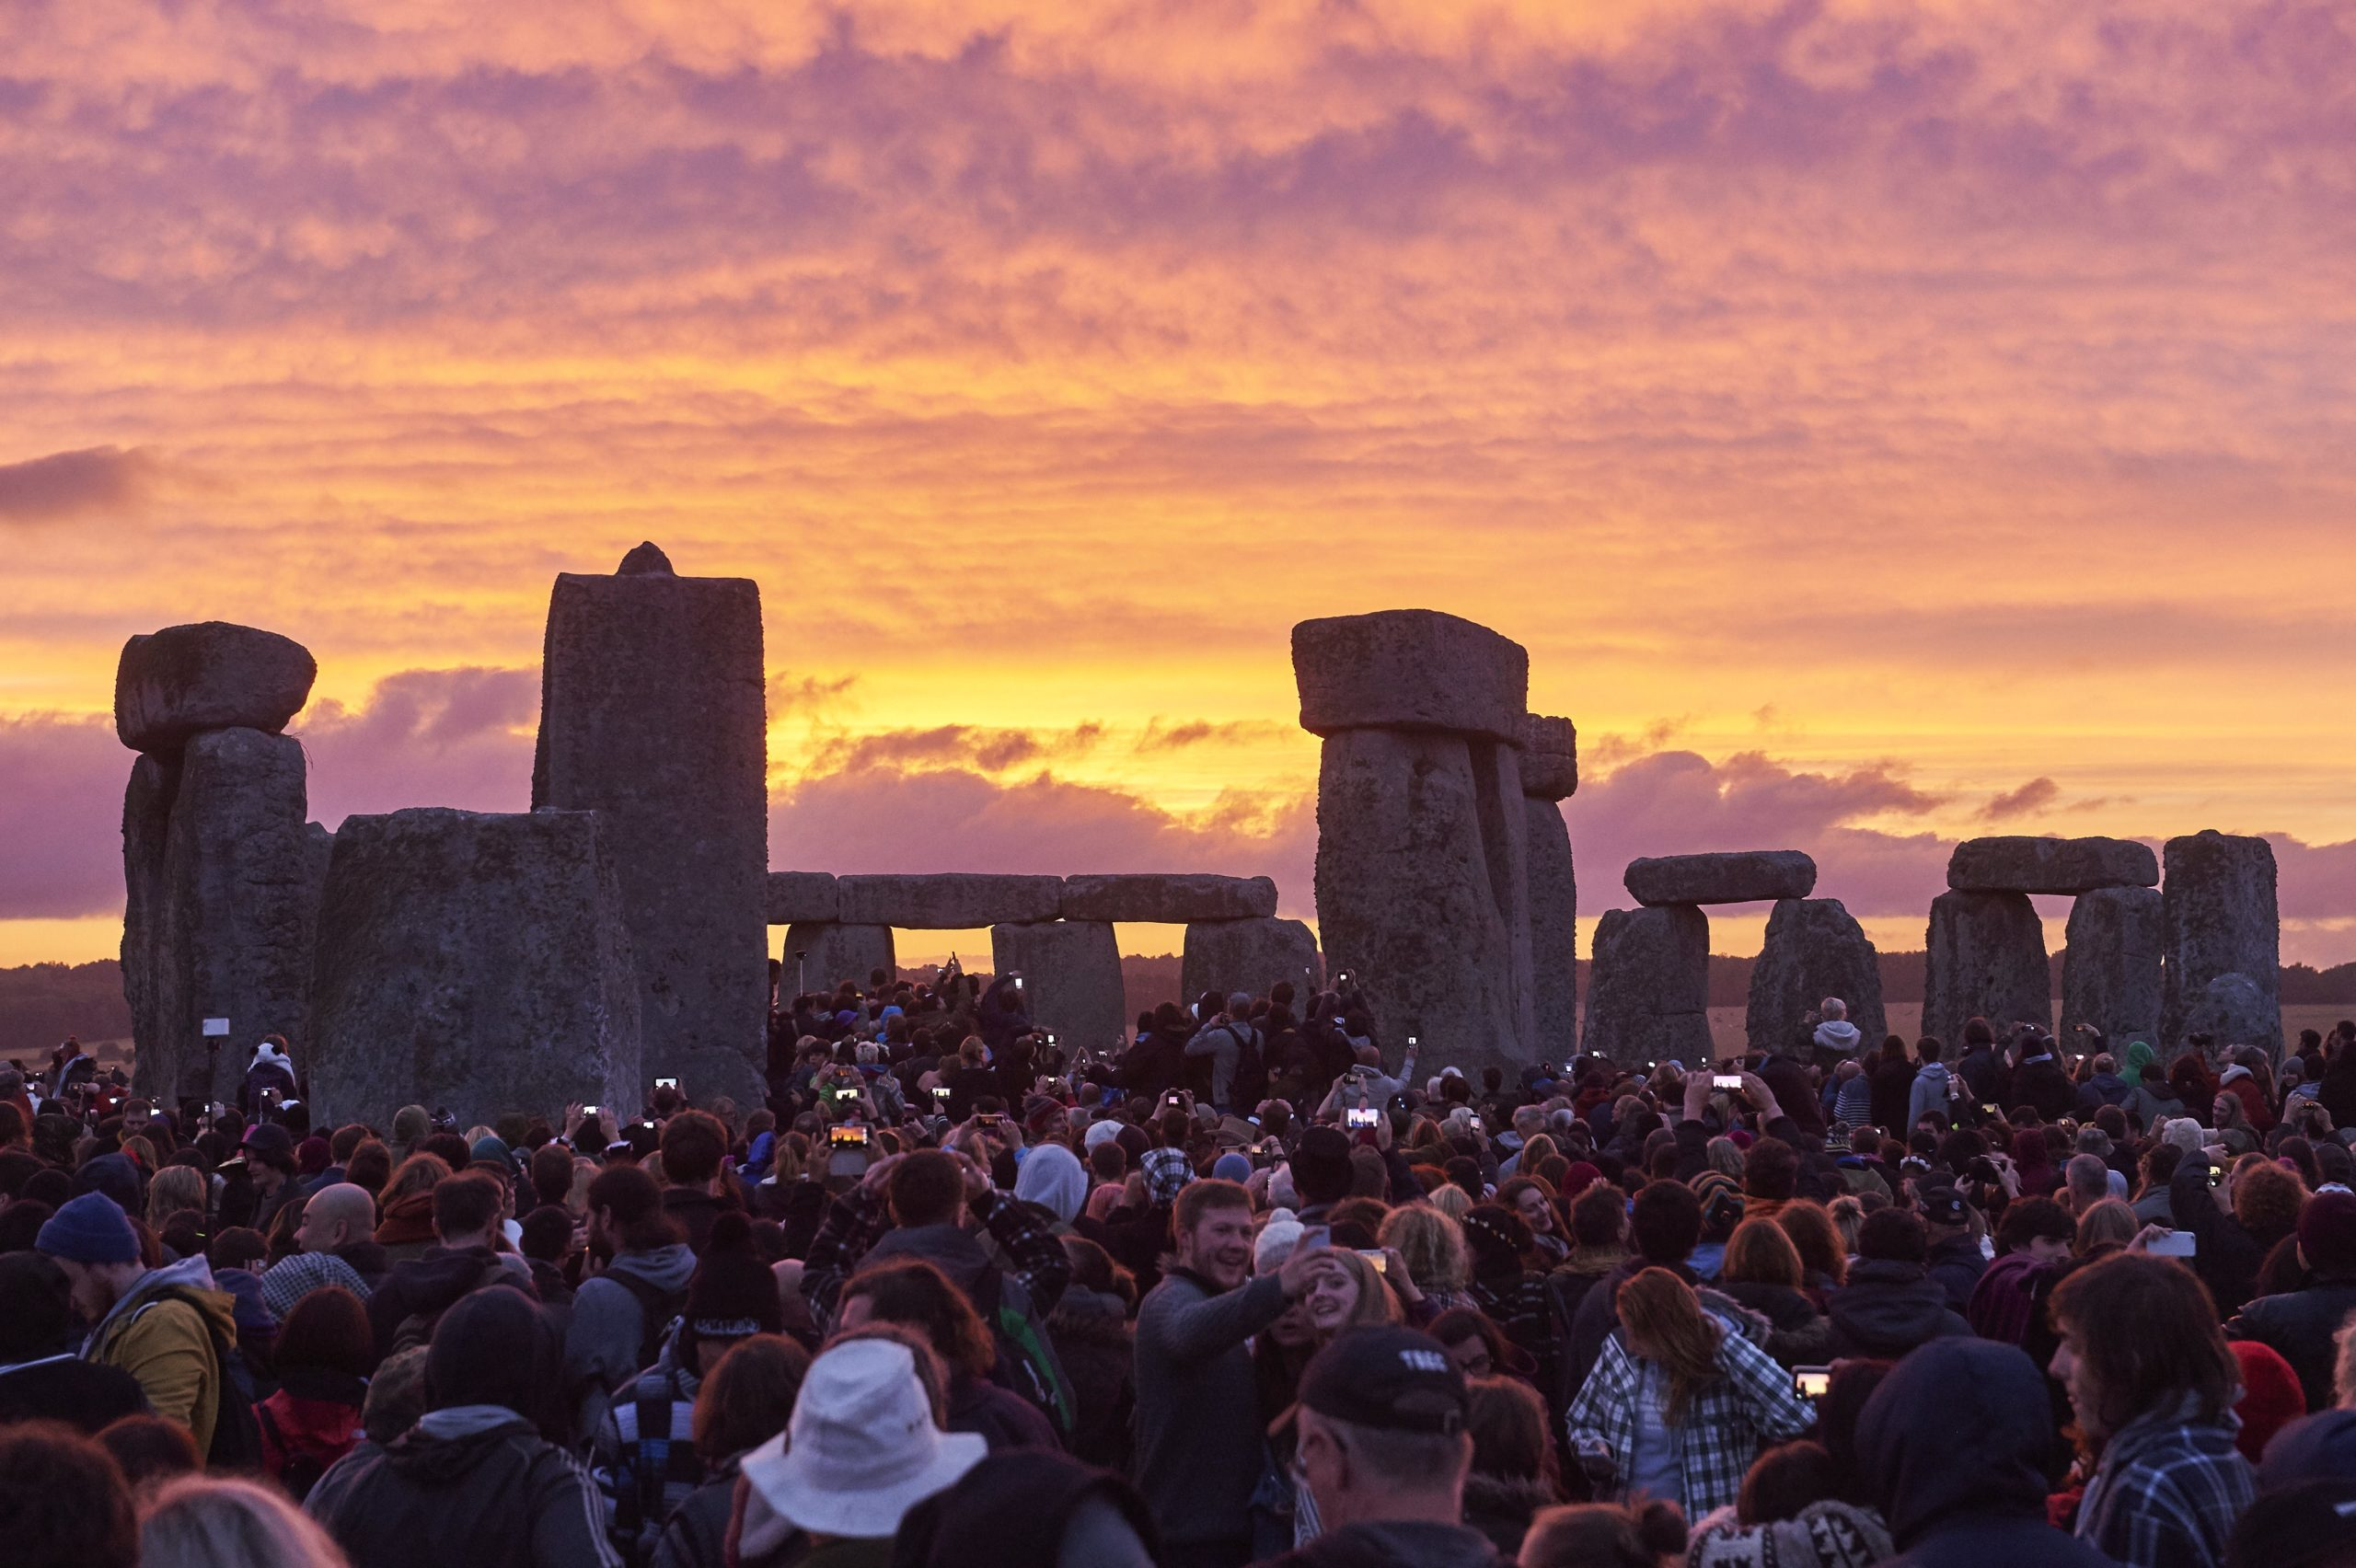 Revellers watch the sunrise as they celebrate the pagan festival of Summer Solstice at Stonehenge in Wiltshire, southern England on June 21, 2015. (NIKLAS HALLE'N/AFP via Getty Images)